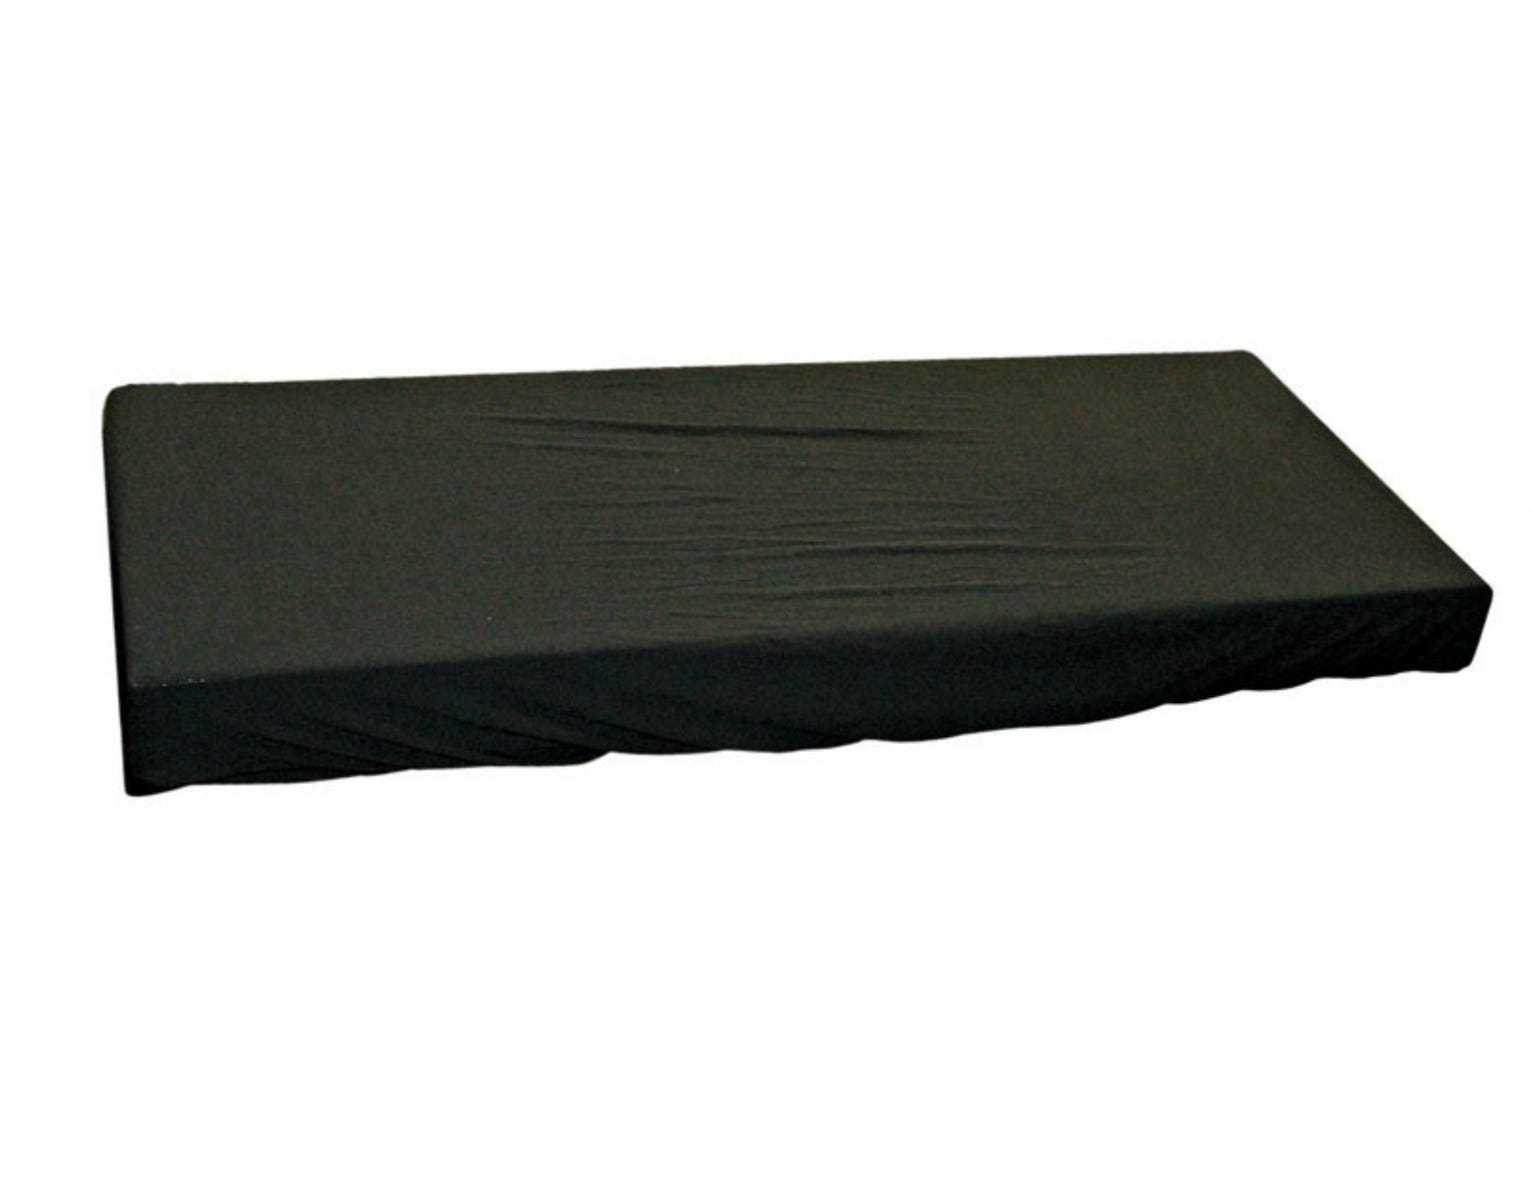 AMS Keyboard Dust Cover (Large)